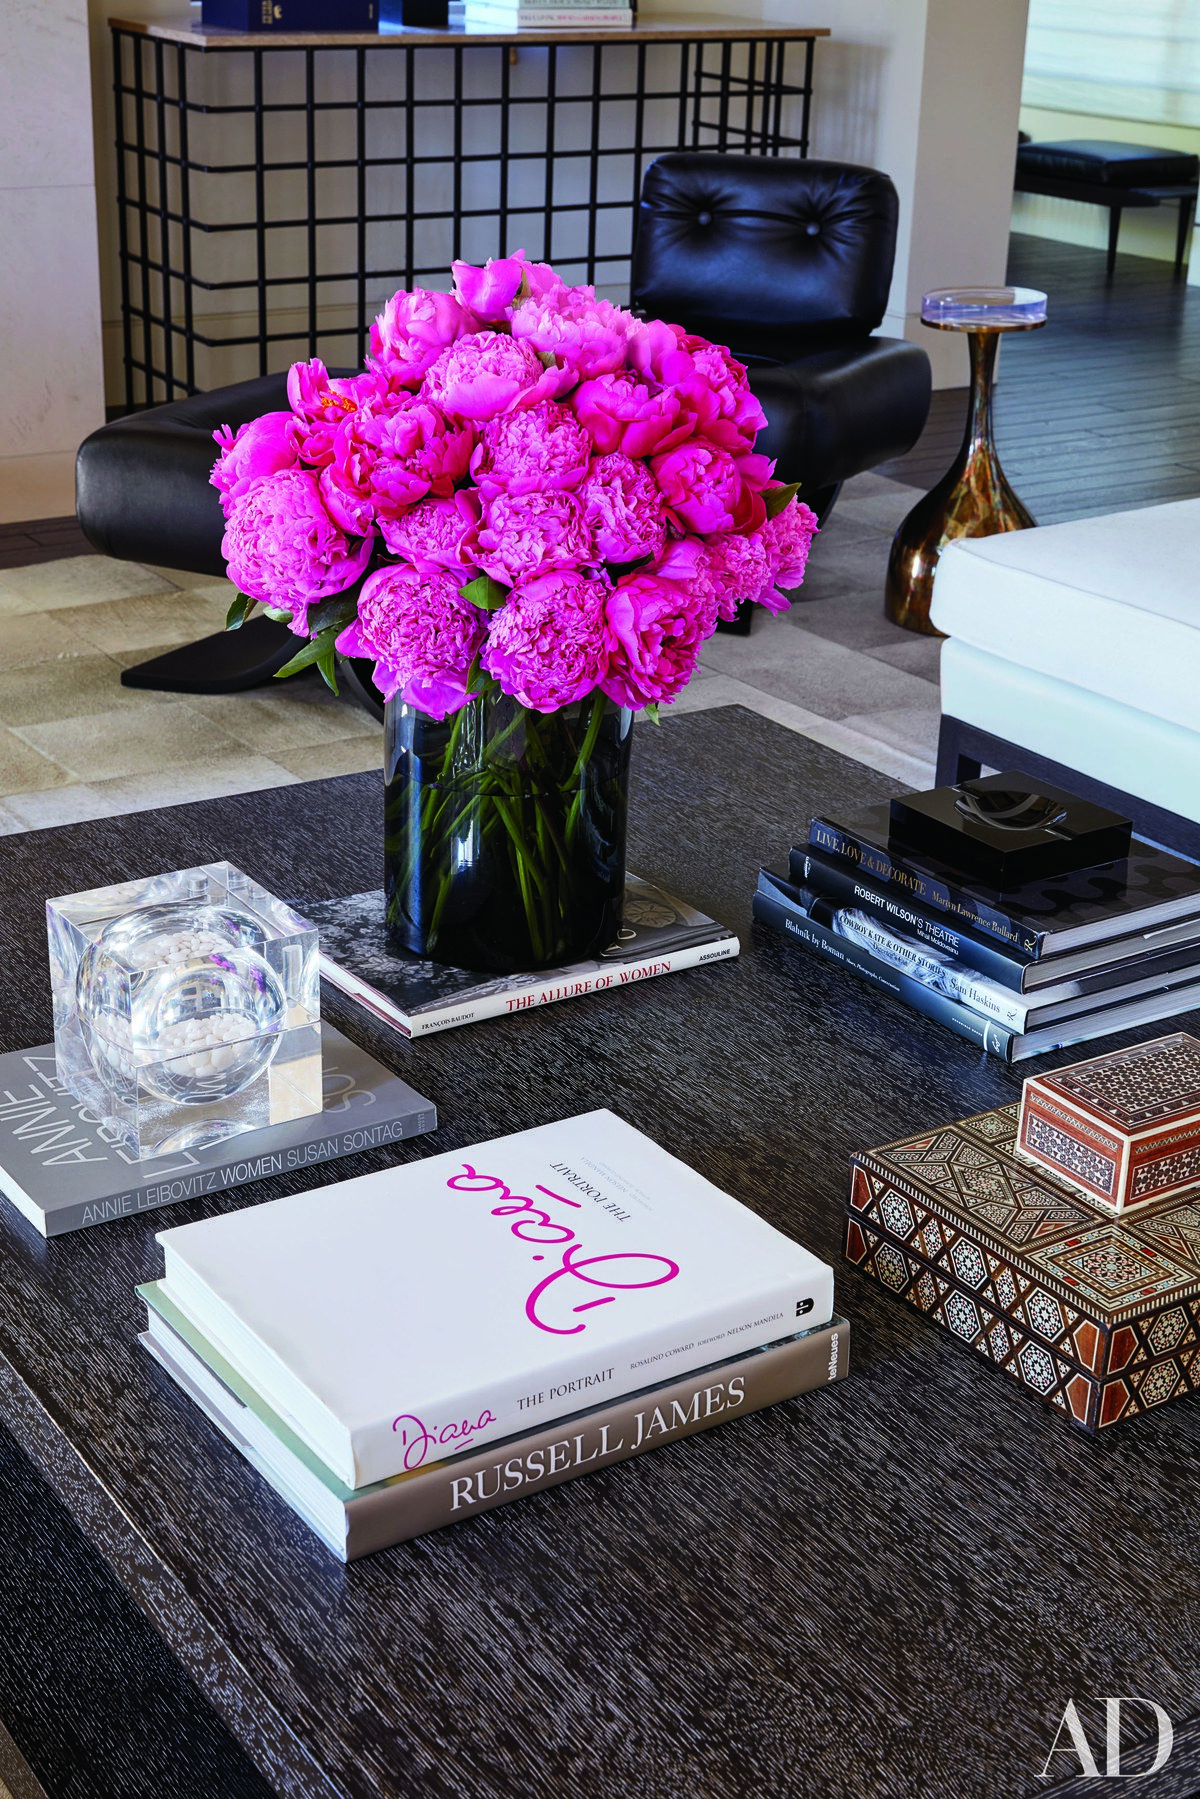 Stylish Celebrity Coffee Tables From Patrick Dempsey Chrissy Teigen And Naomi Watts Architectural Digest Center Table Decor Living Room Center Chanel Coffee Table Book [ 1799 x 1200 Pixel ]